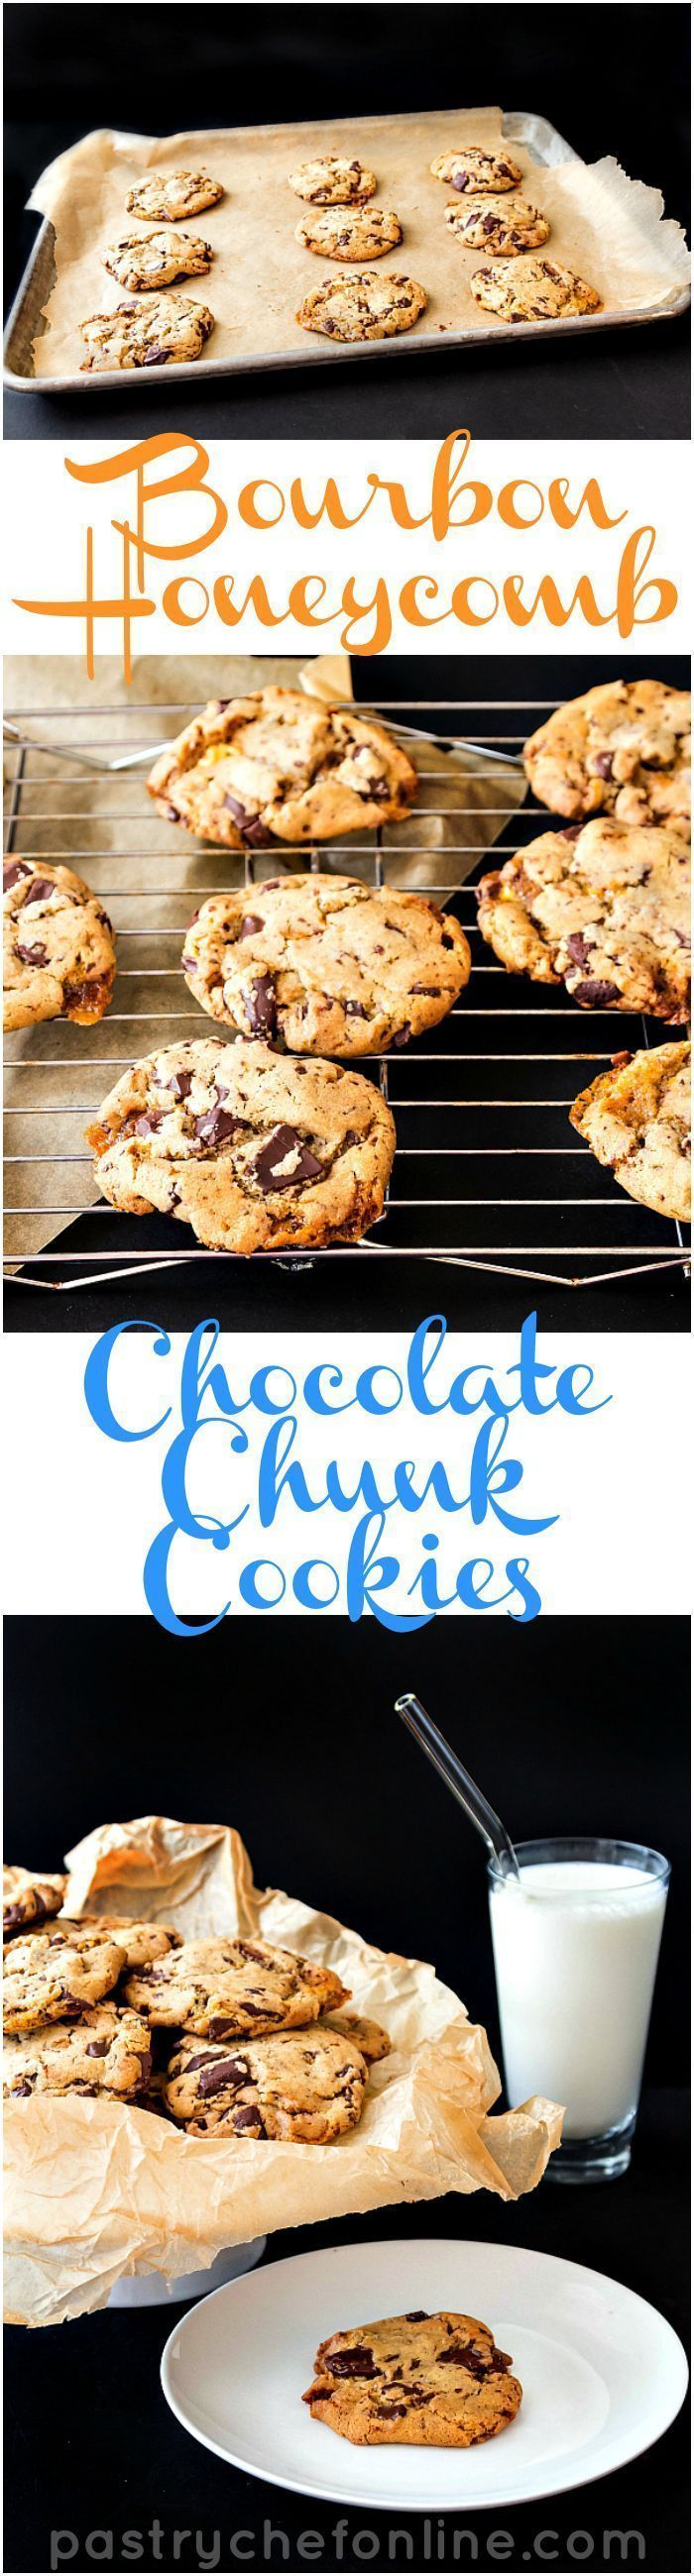 Chocolate Chip Bourbon Honeycomb Cookies   Pastry Chef Online